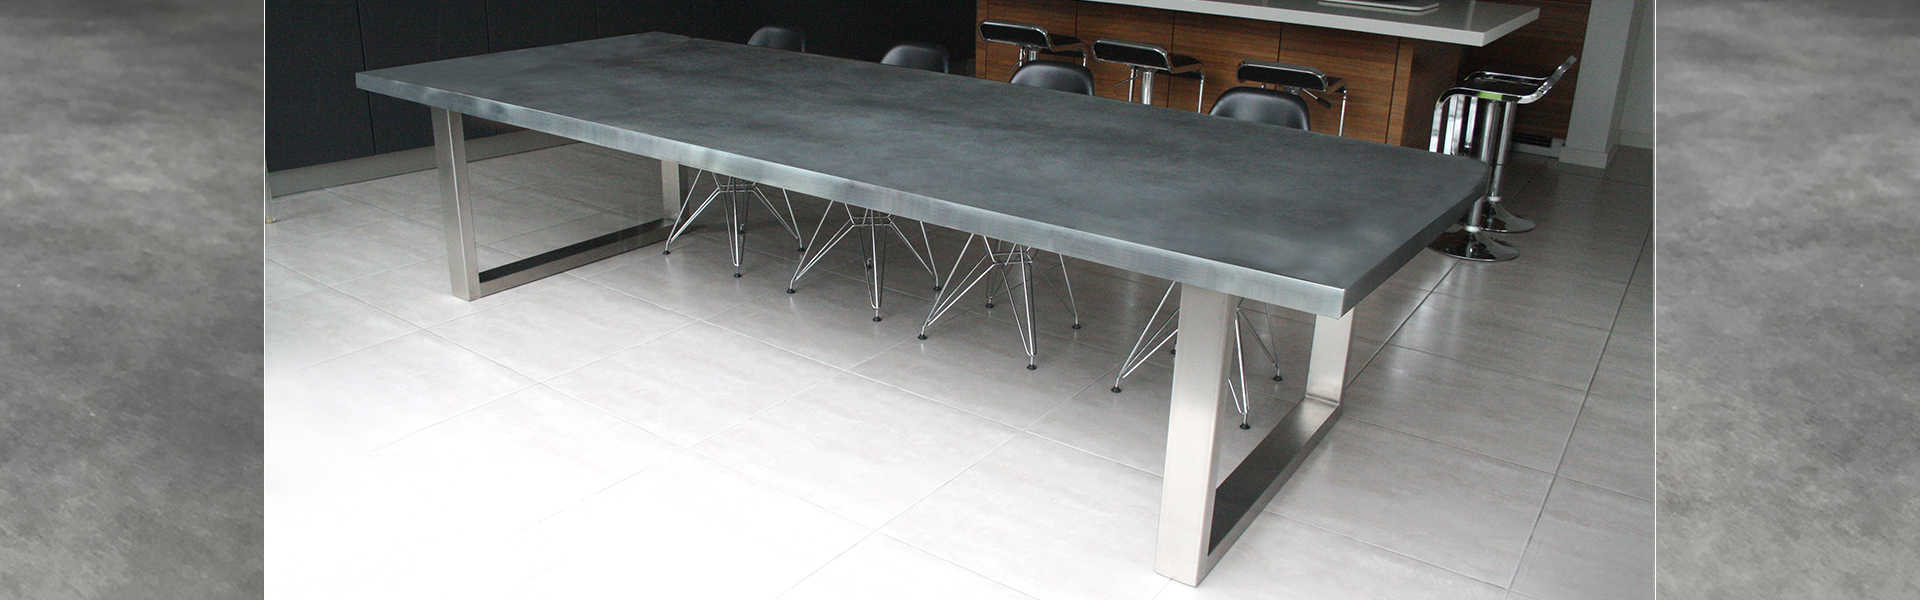 Signature table zinc light patina